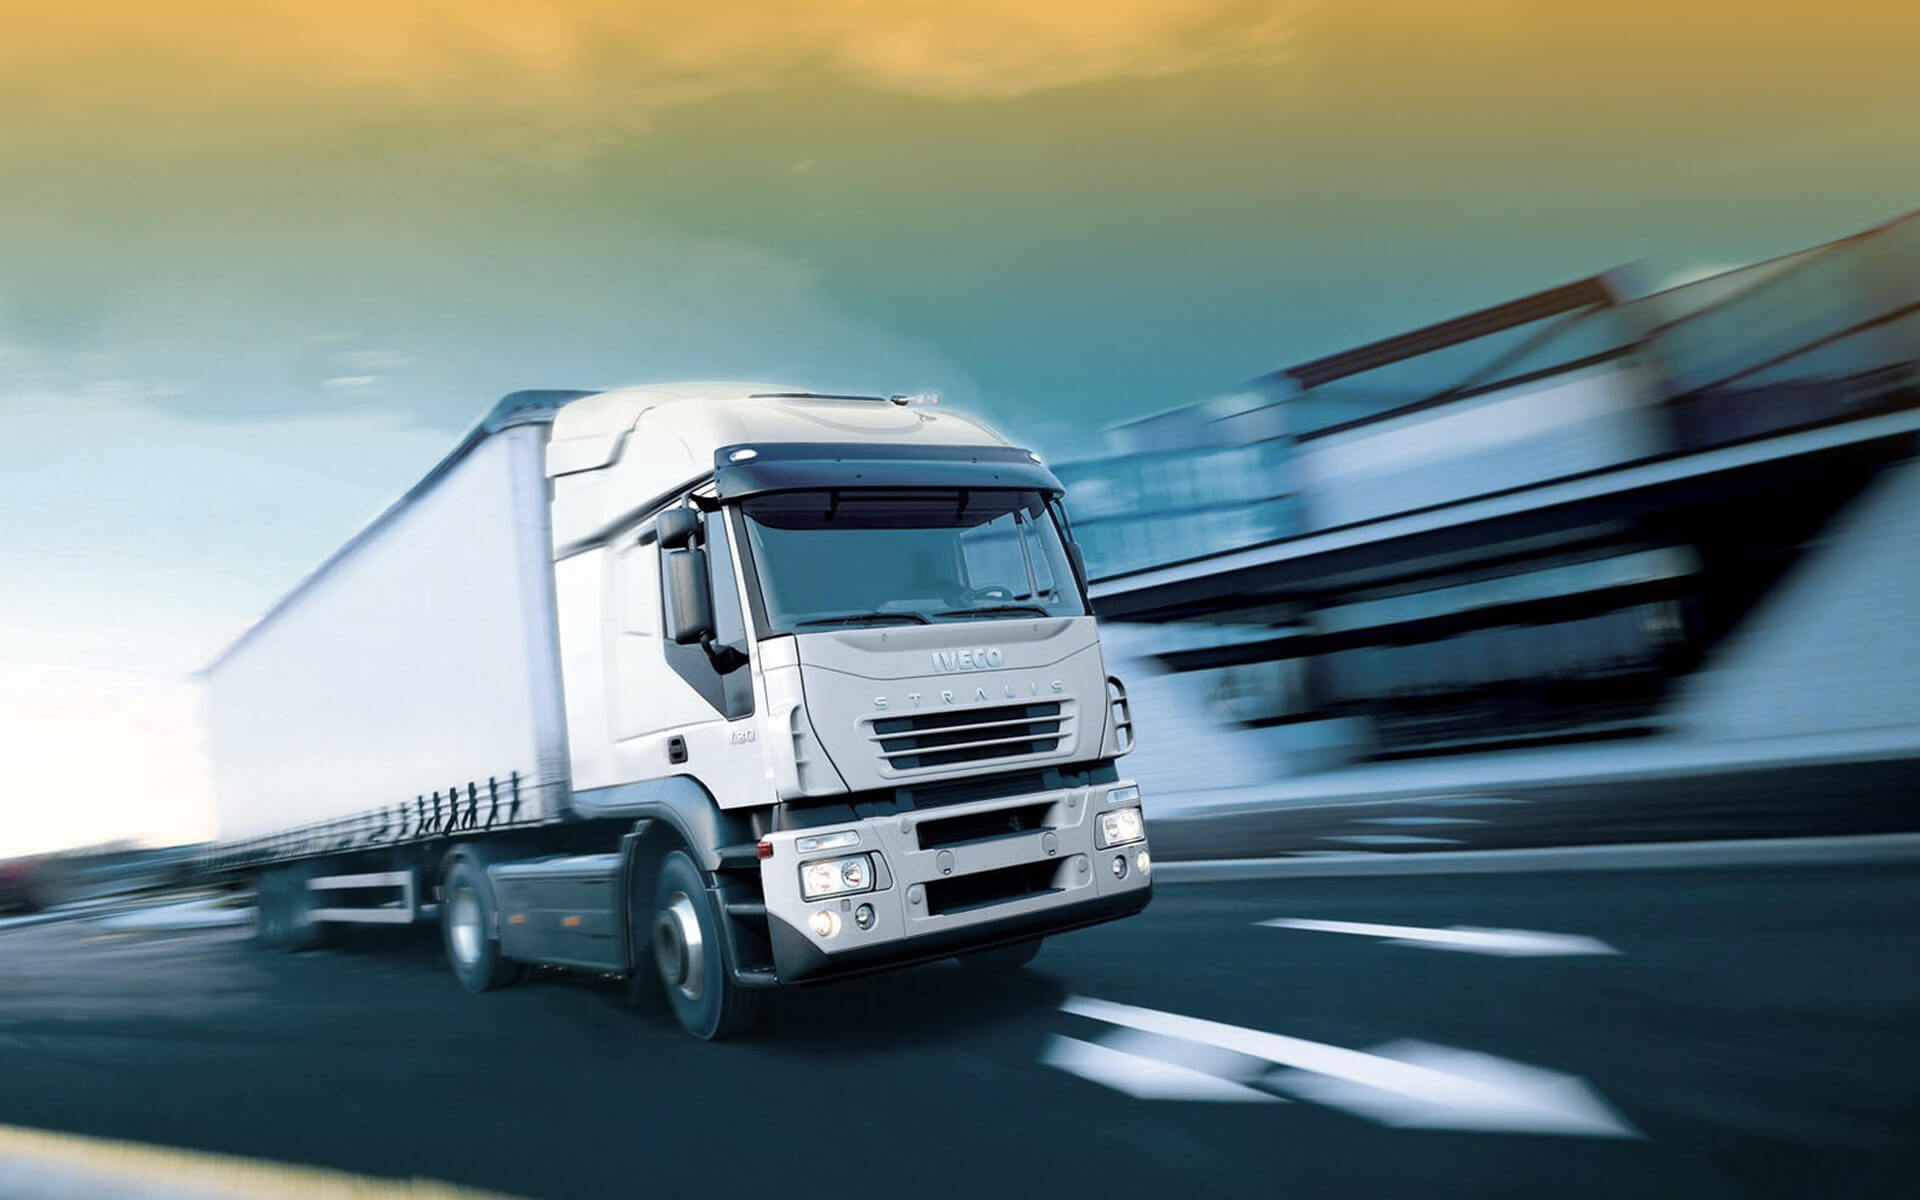 FTL and LTL transportation: What is the difference between transportation services of 3PL providers?